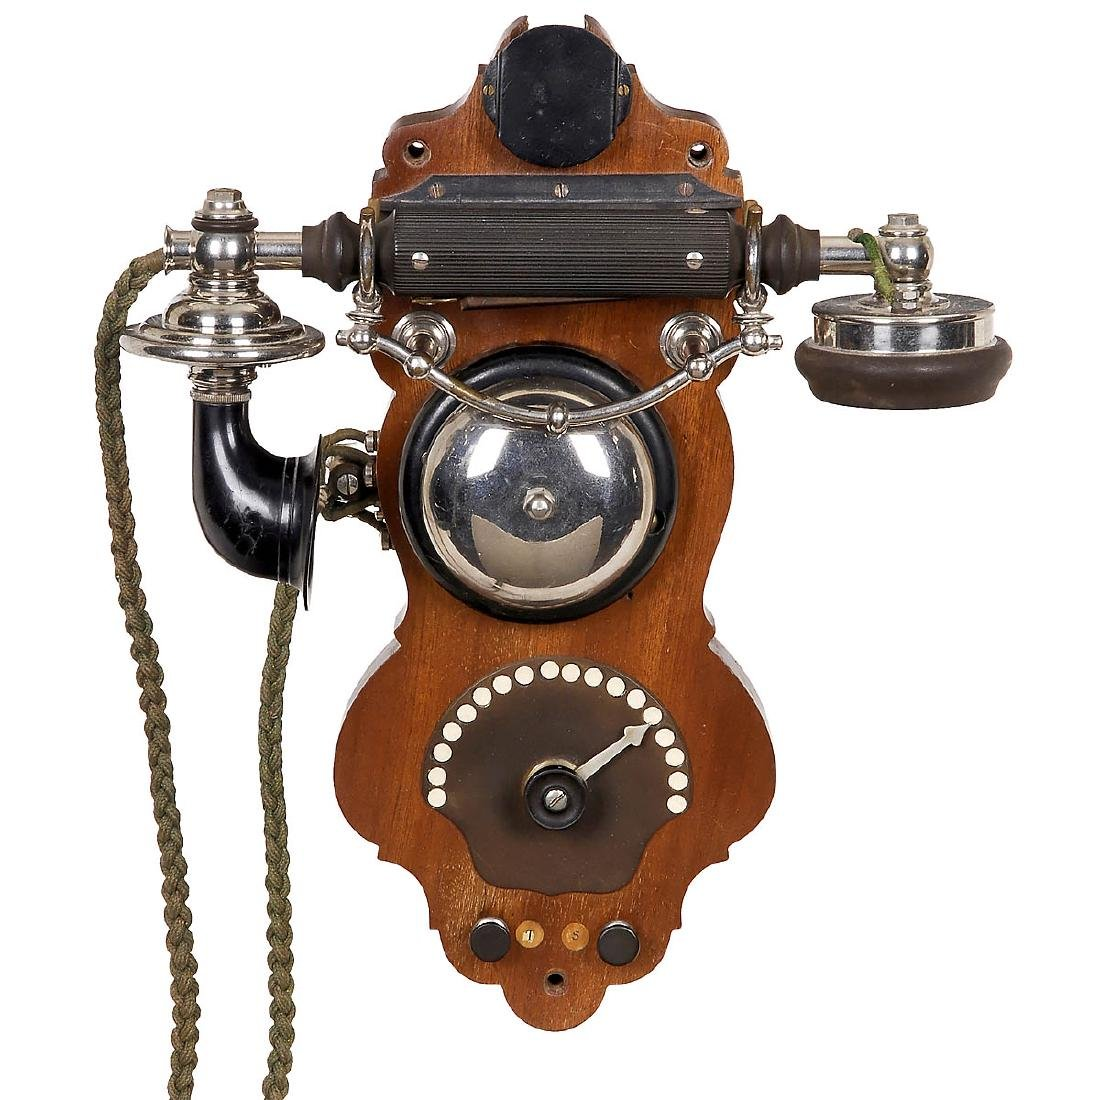 Intercom Telephone, c. 1900